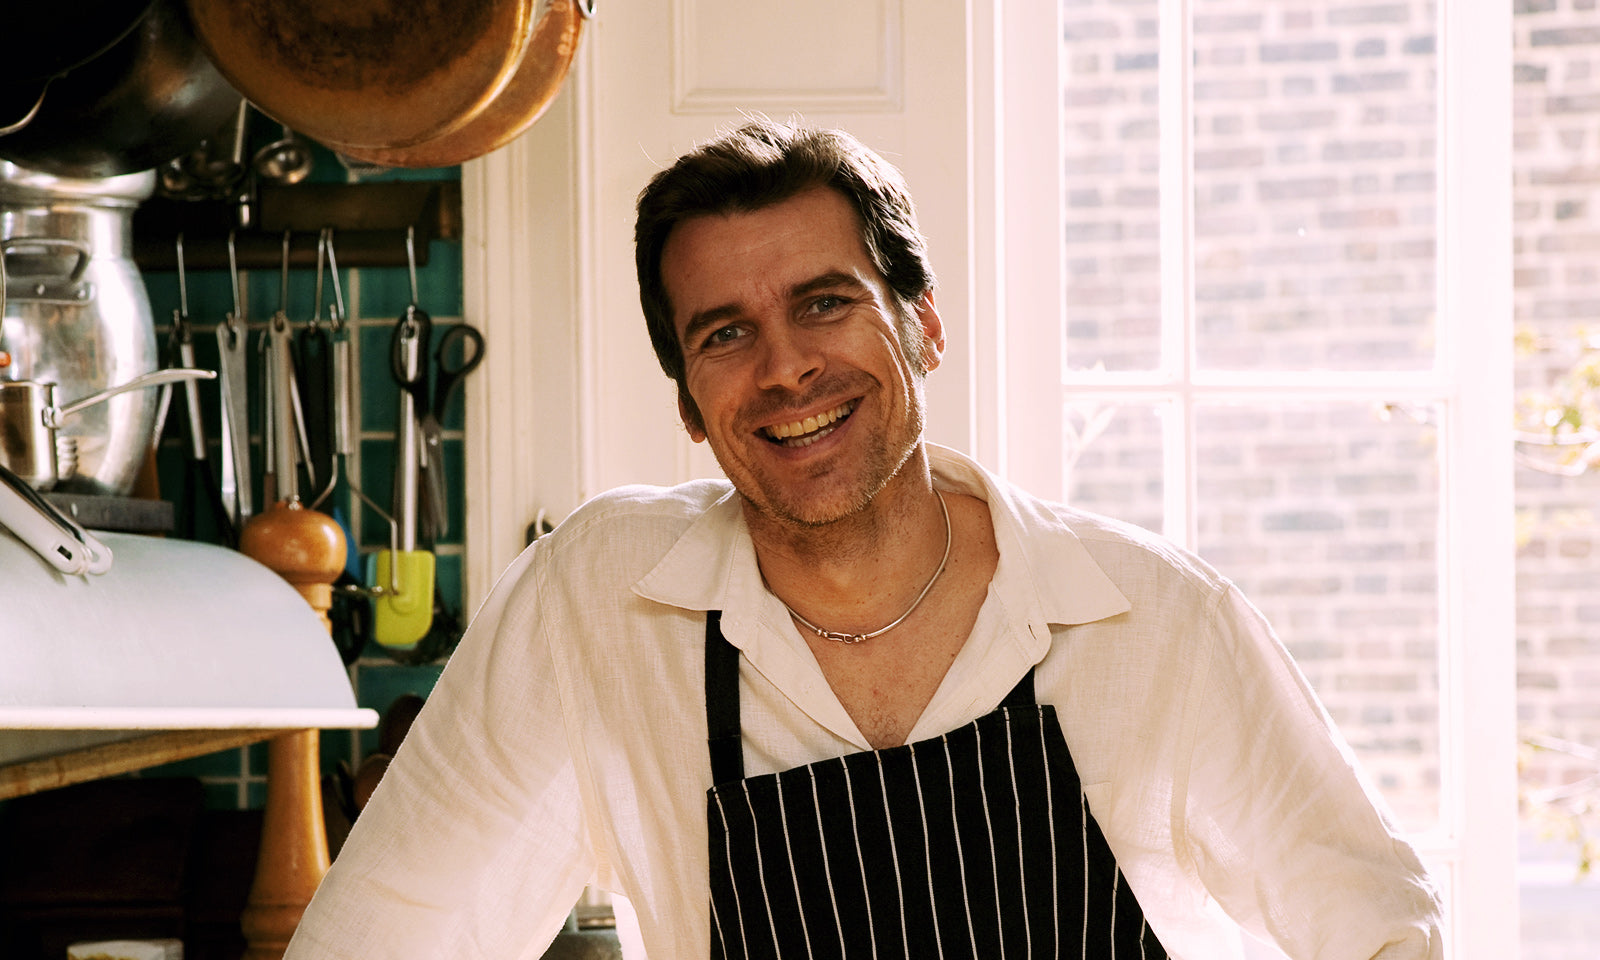 Photo of John Benbow, Chef and founder of Food at 52.